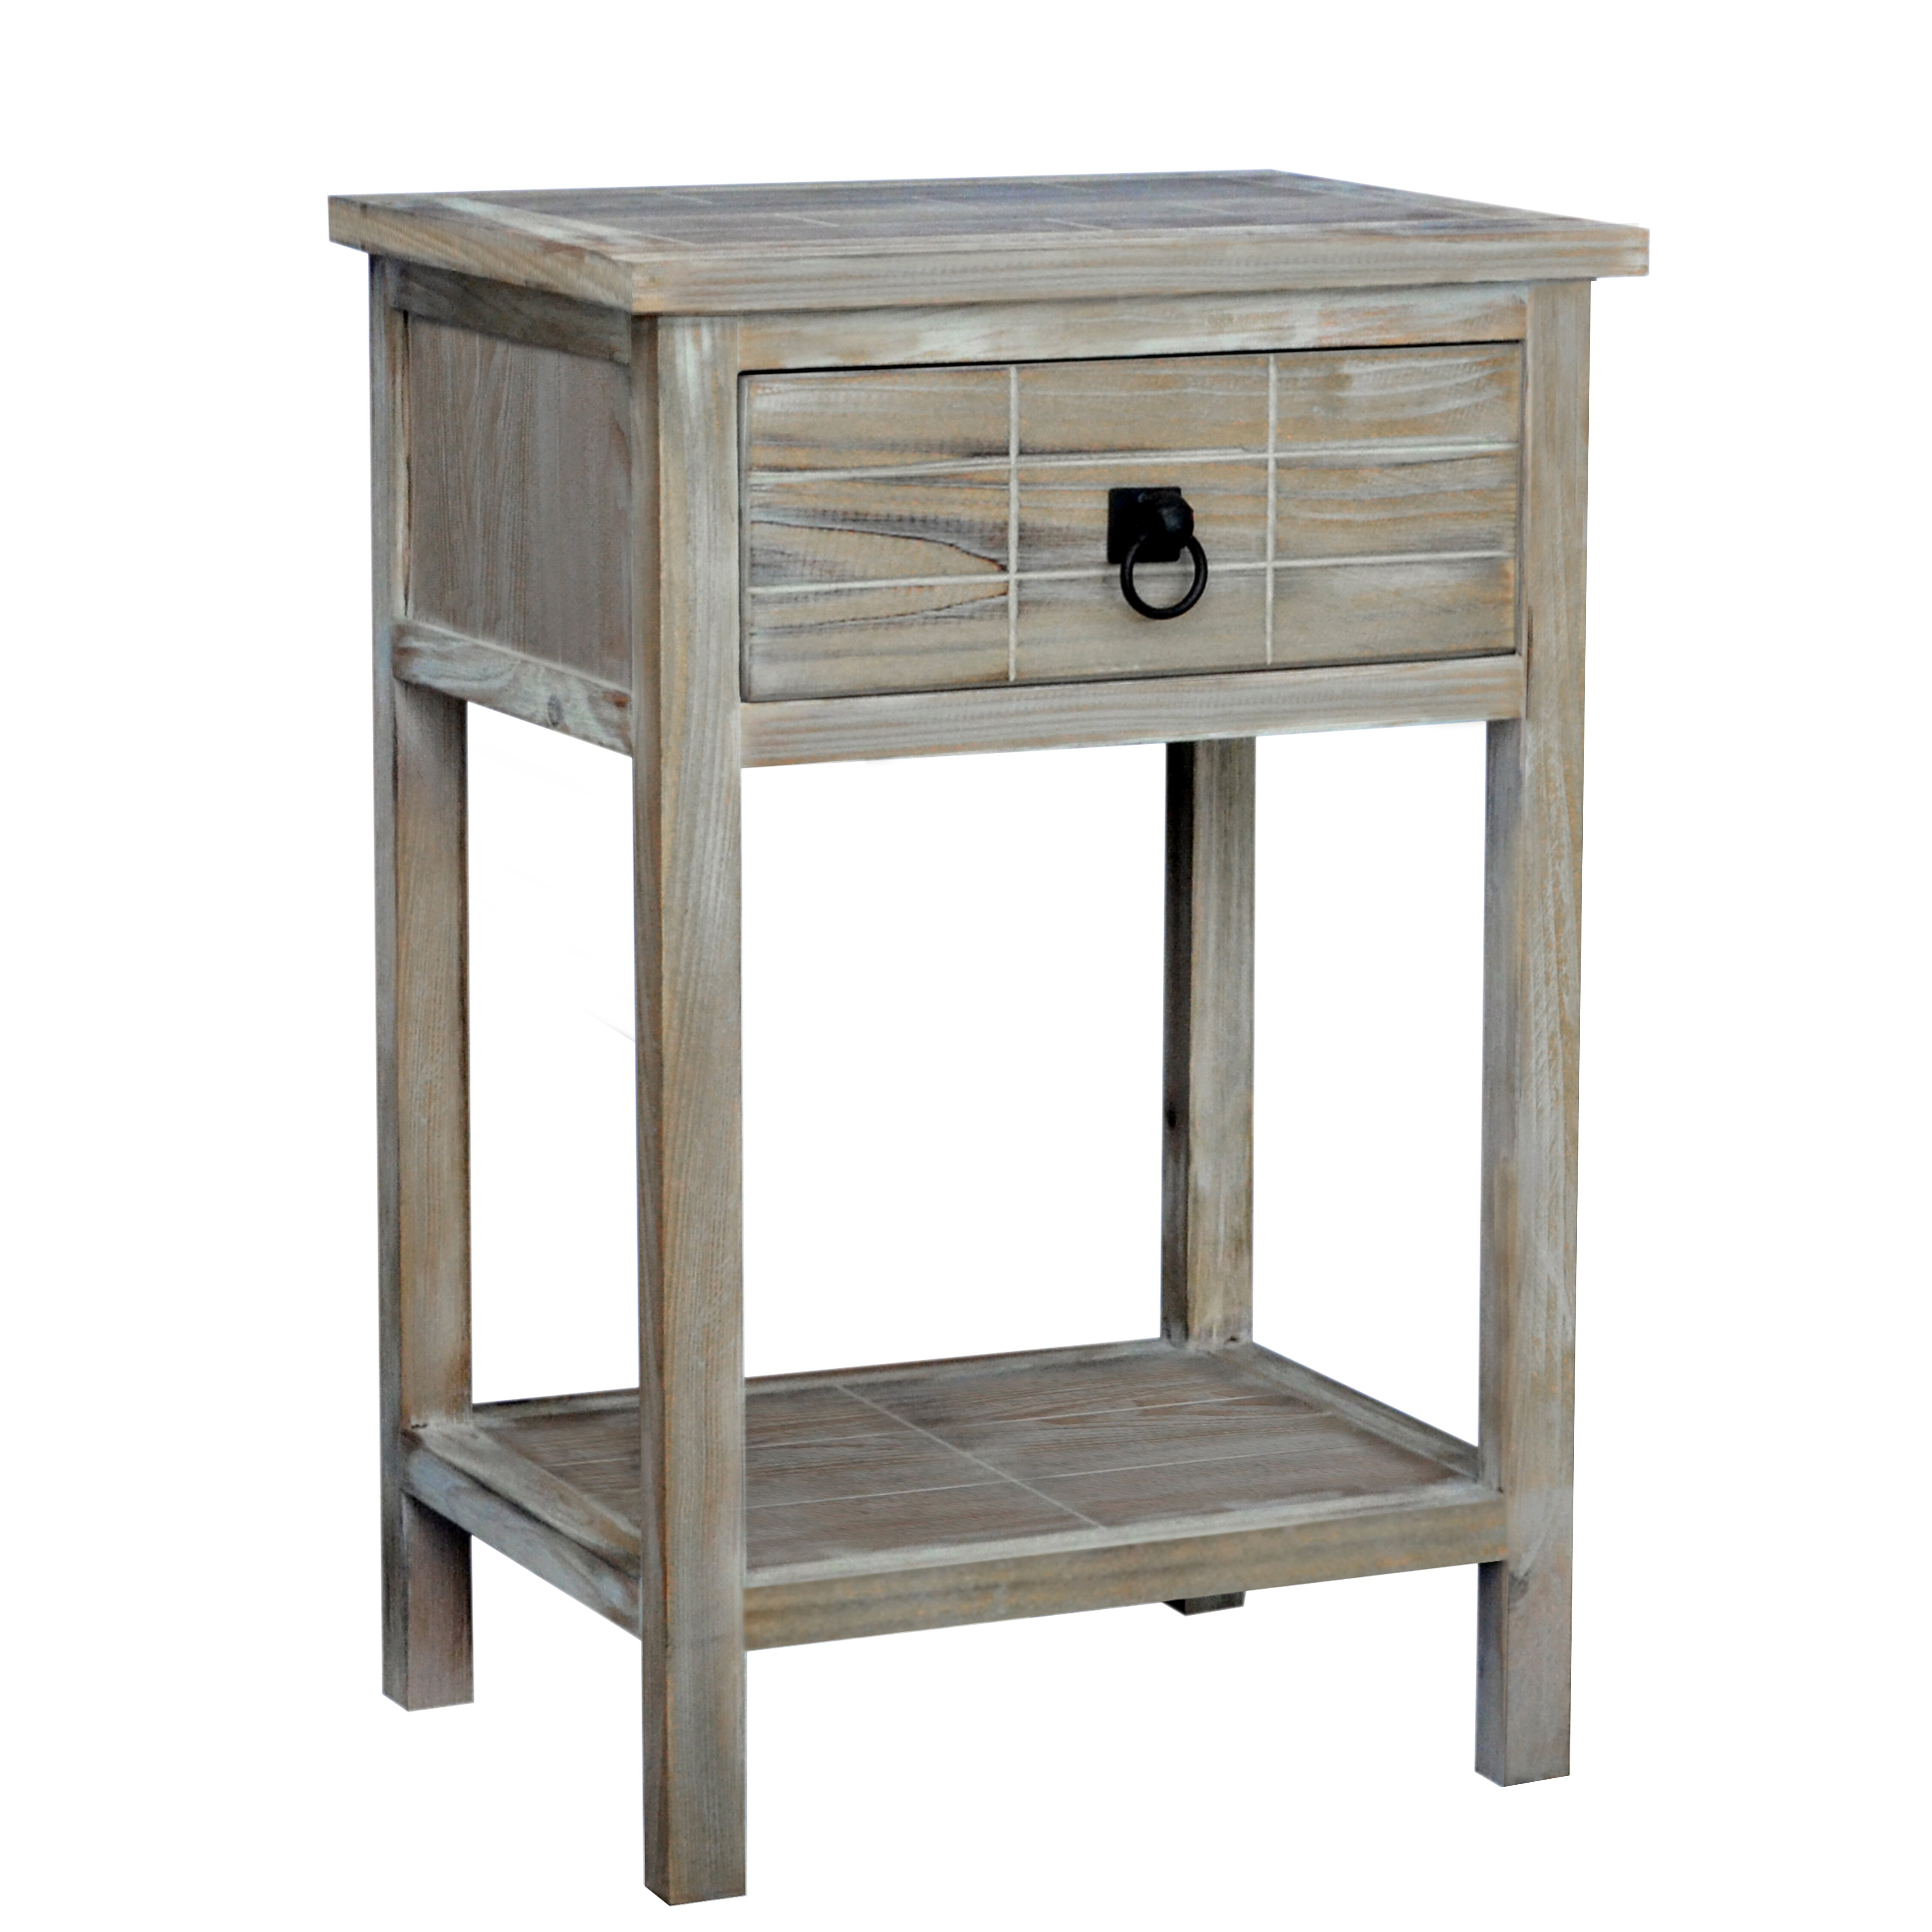 Driftwood End Table: Gallerie Decor Driftwood End Table & Reviews